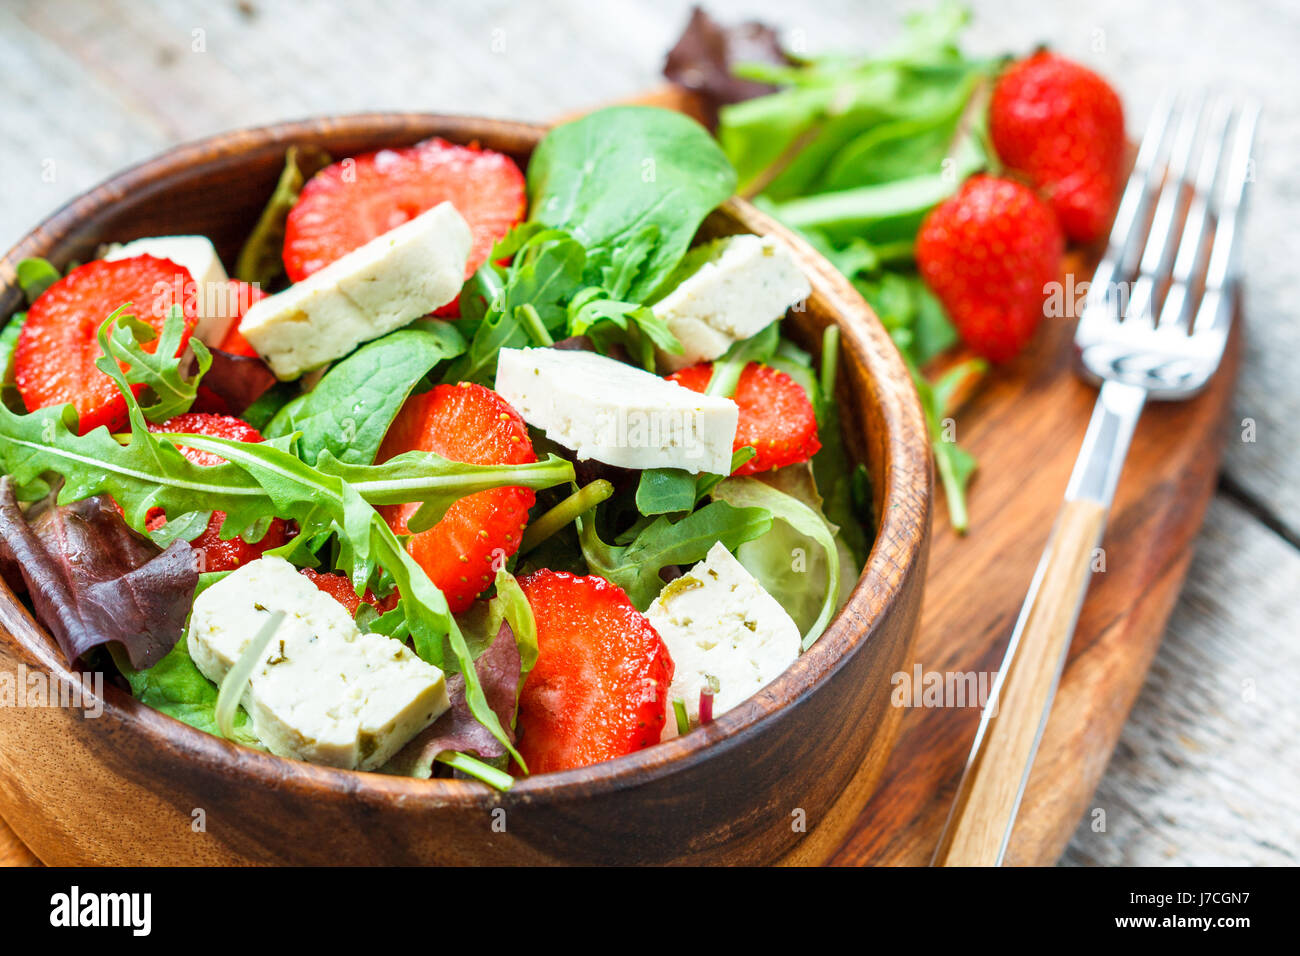 Vegan salad with tofu and strawberries. Love for a healthy vegan food concept Stock Photo